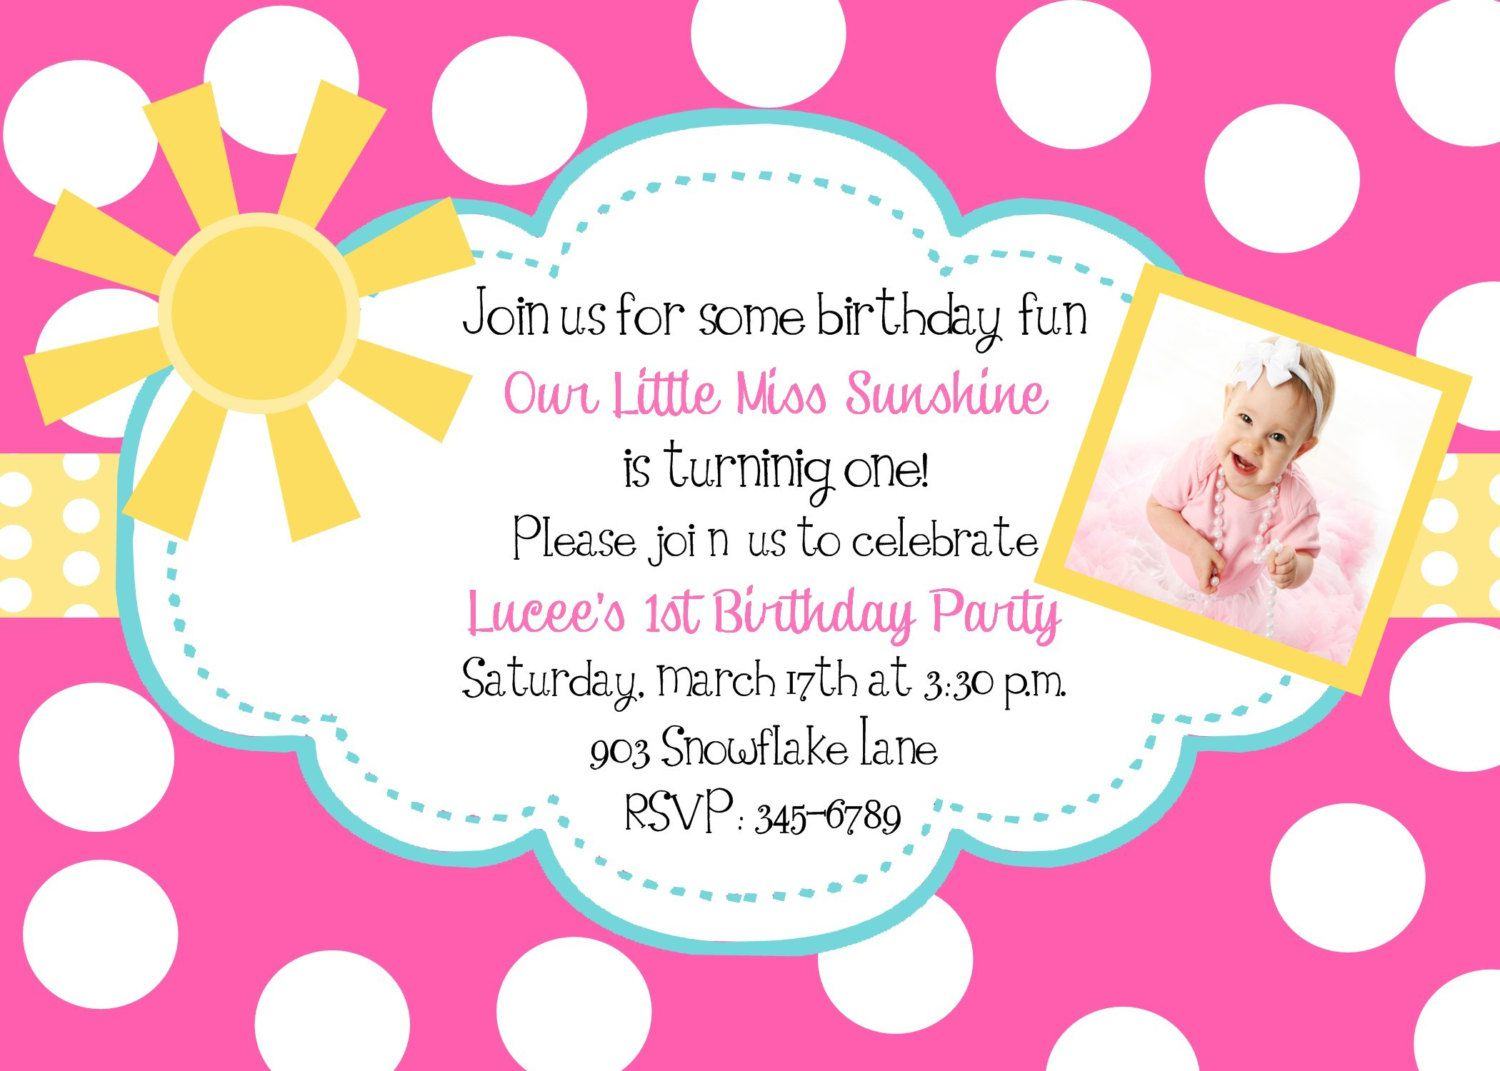 birthday invitation message for 6 year old ; birthday-invitation-wording-for-3-year-old